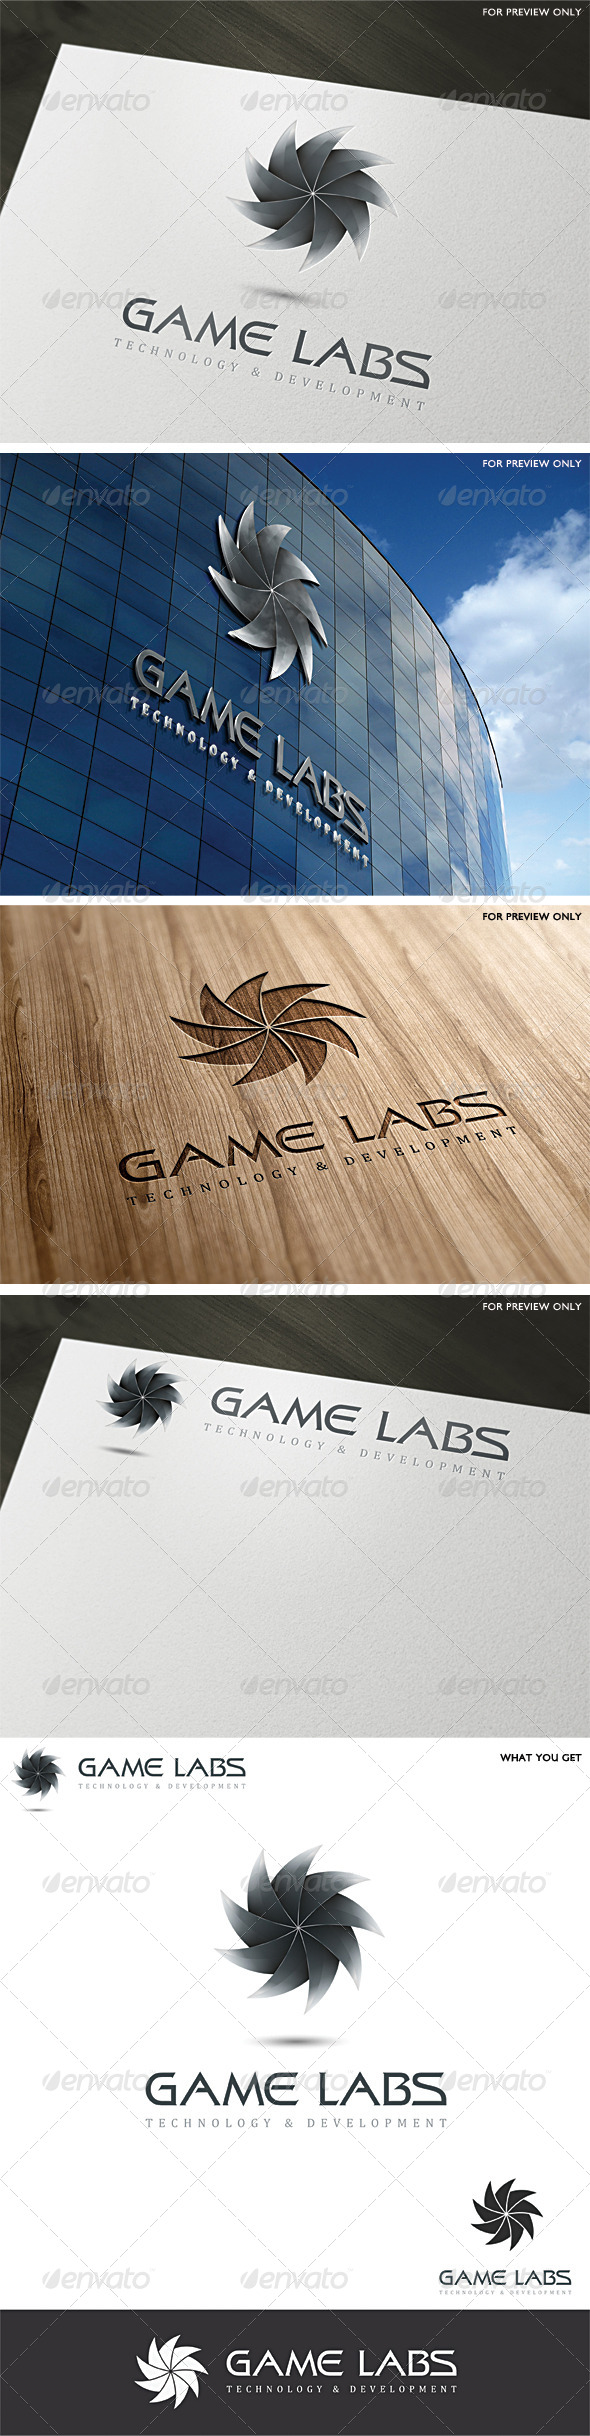 GraphicRiver 3D Game Labs Logo Template v3 4601103